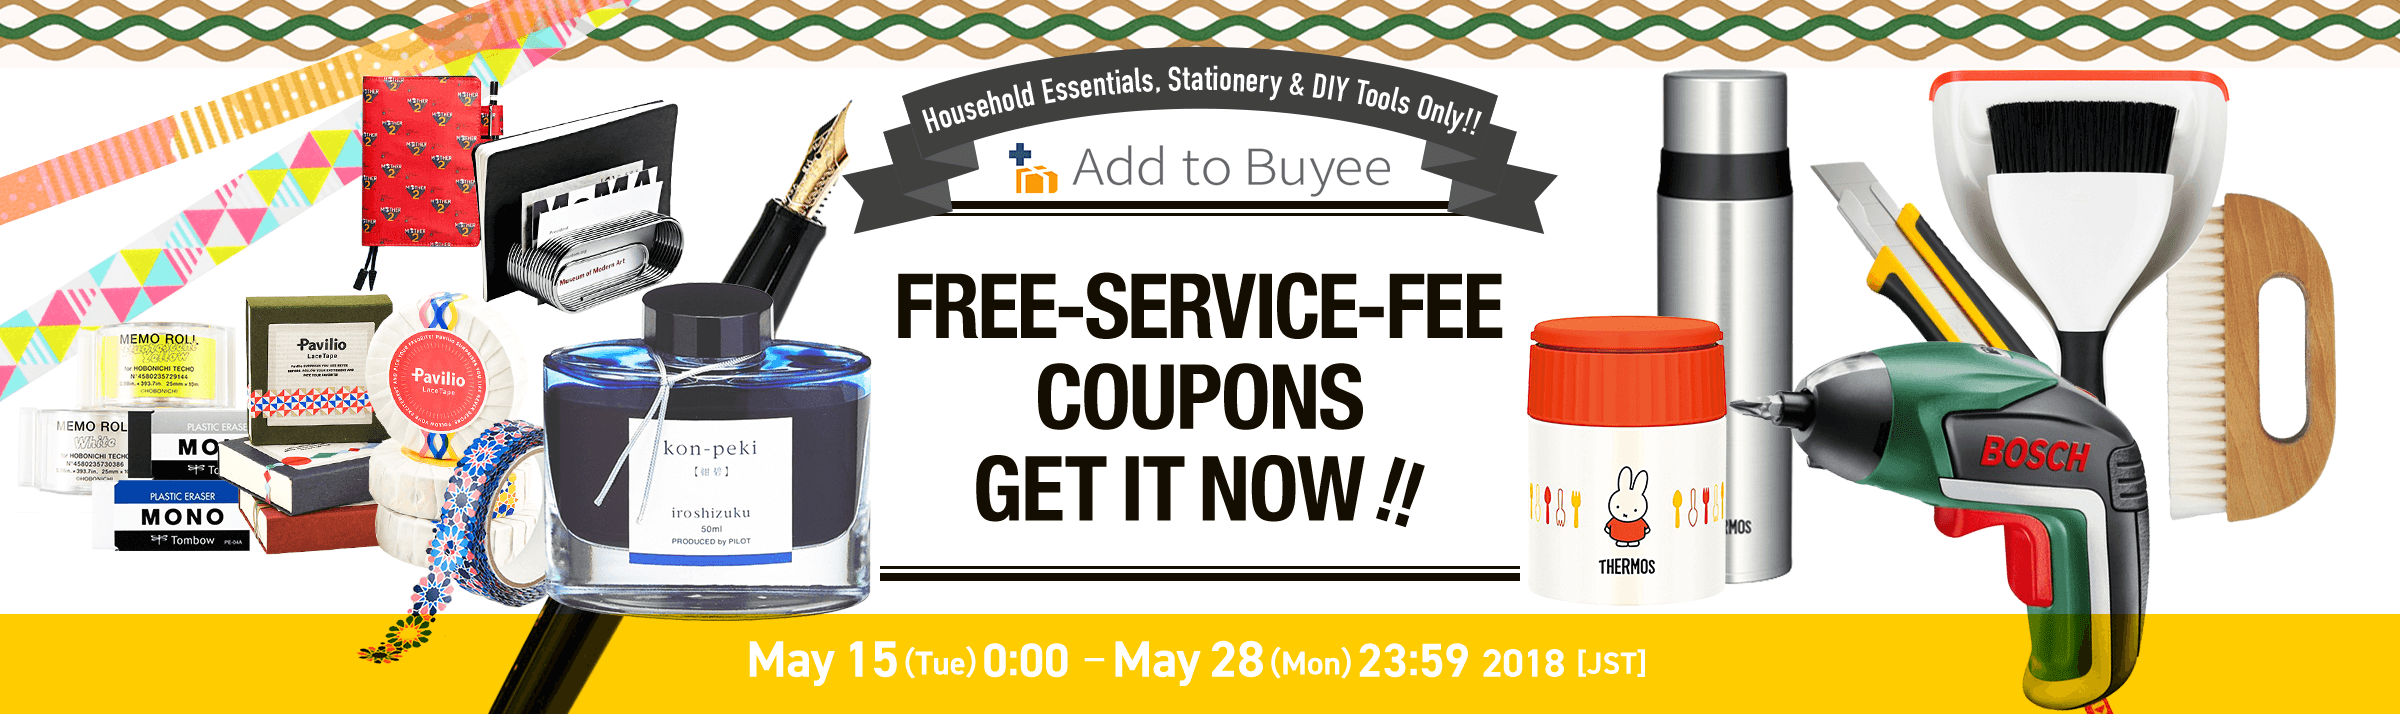 Household Essentials, Stationery & DIY Tools Only!!FREE Service Fee Coupons Get it Now!!